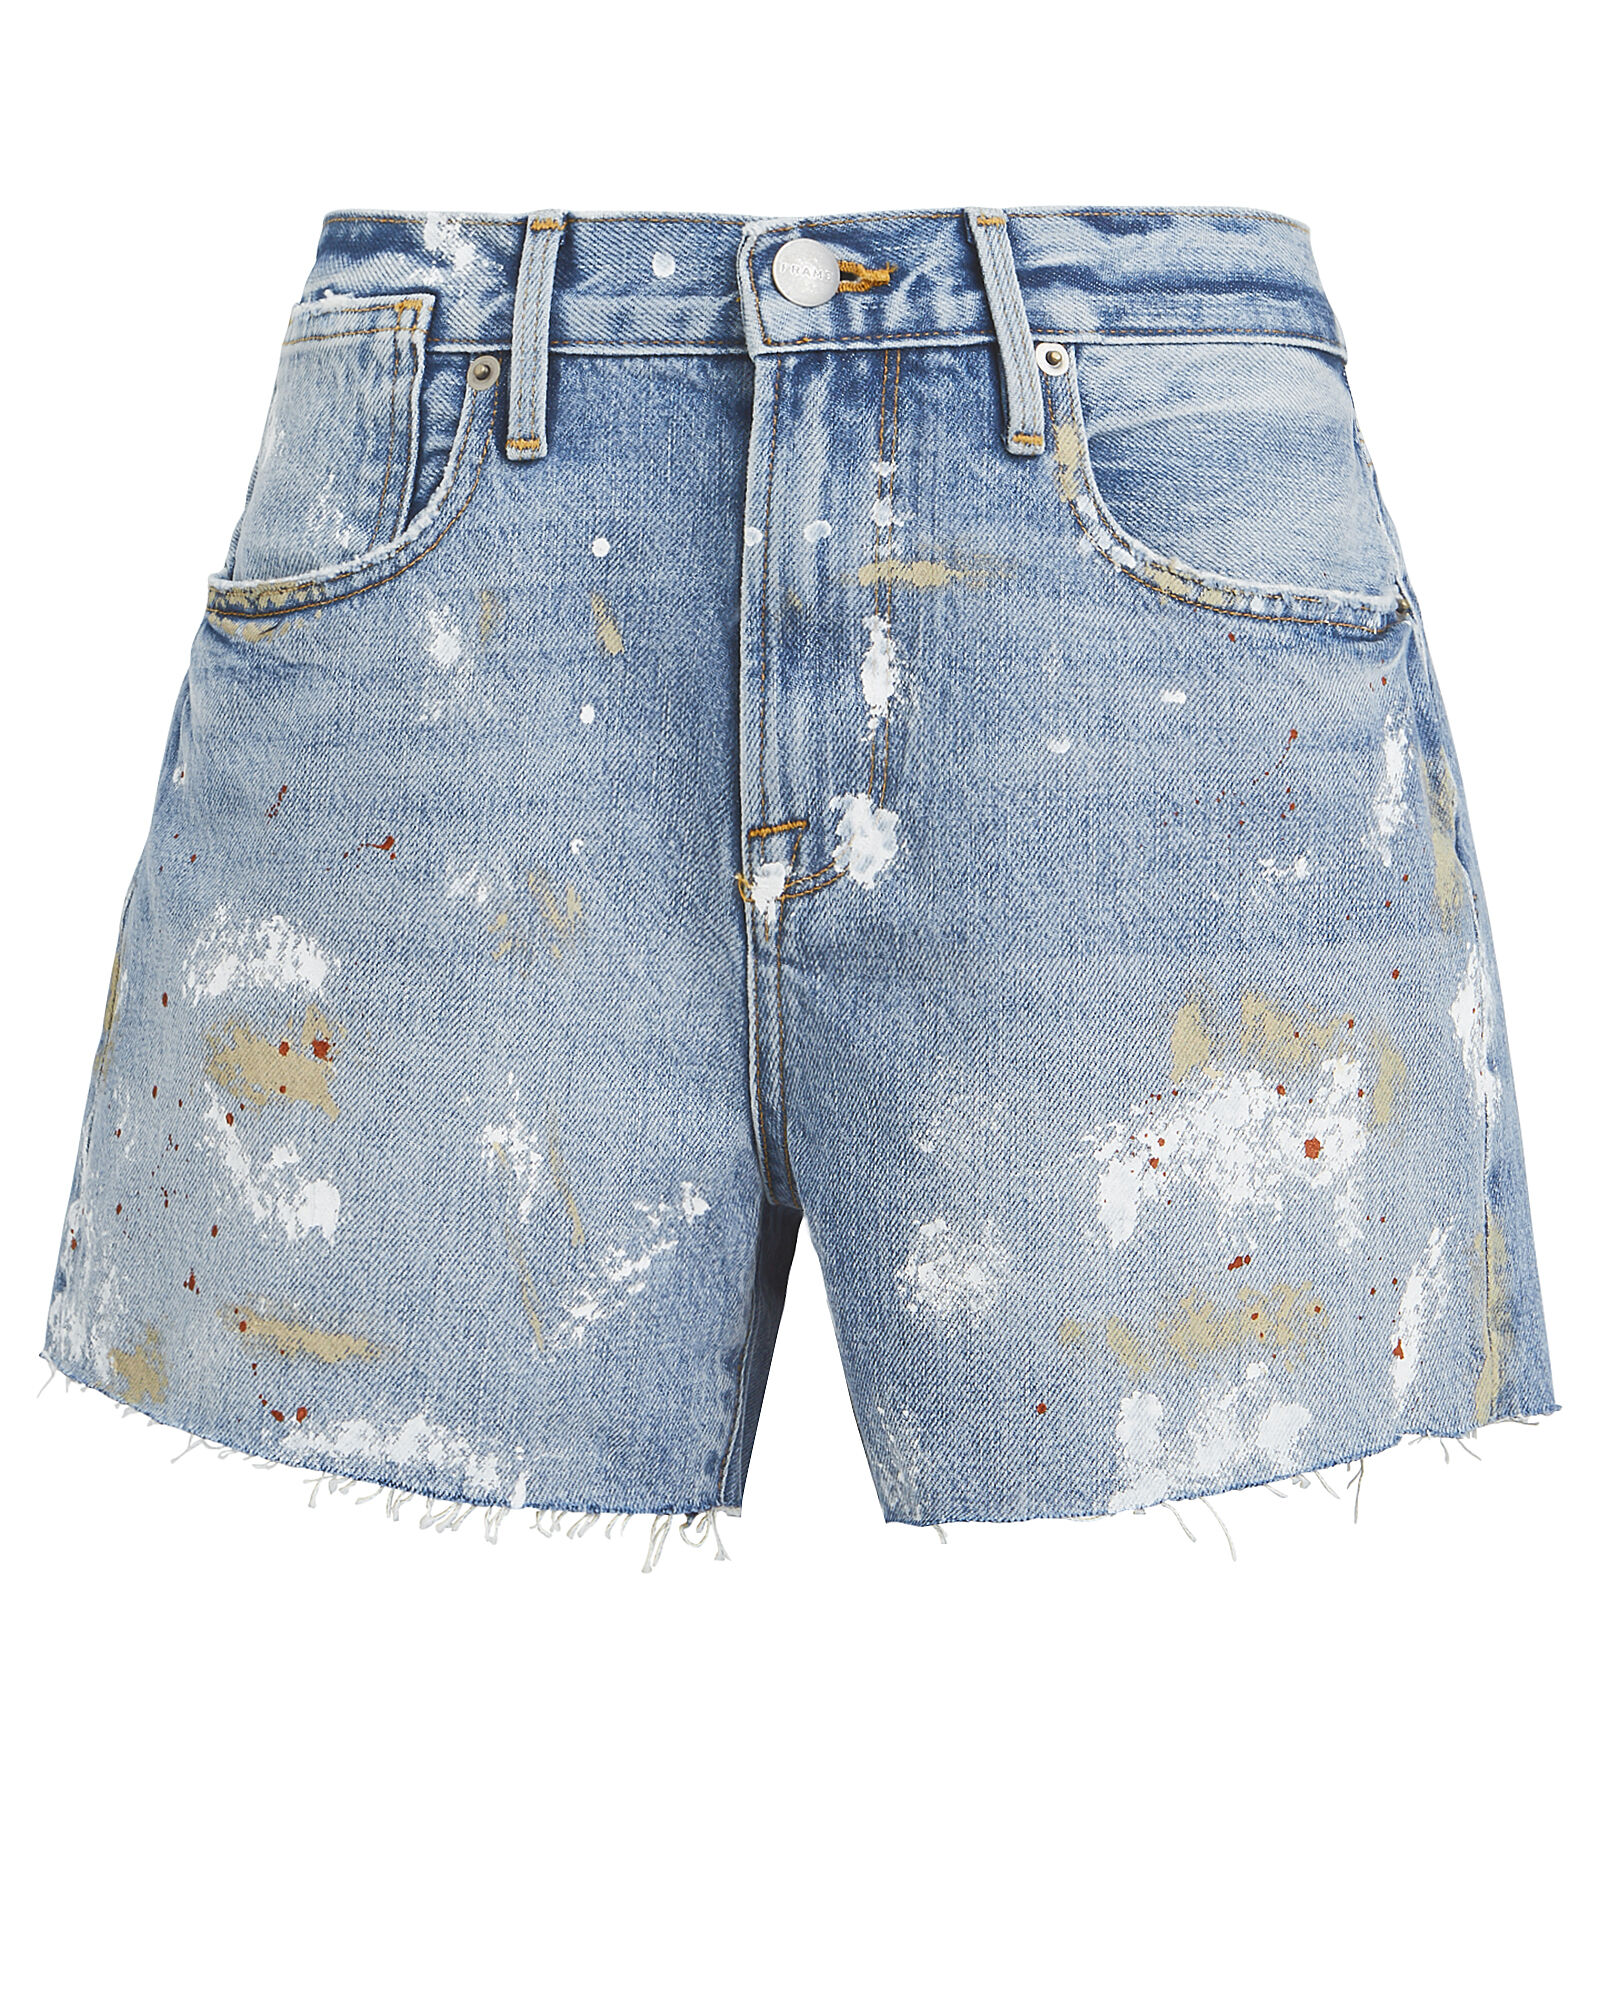 Le Stevie Raw Edge Denim Shorts, DISTRESSED DENIM, hi-res